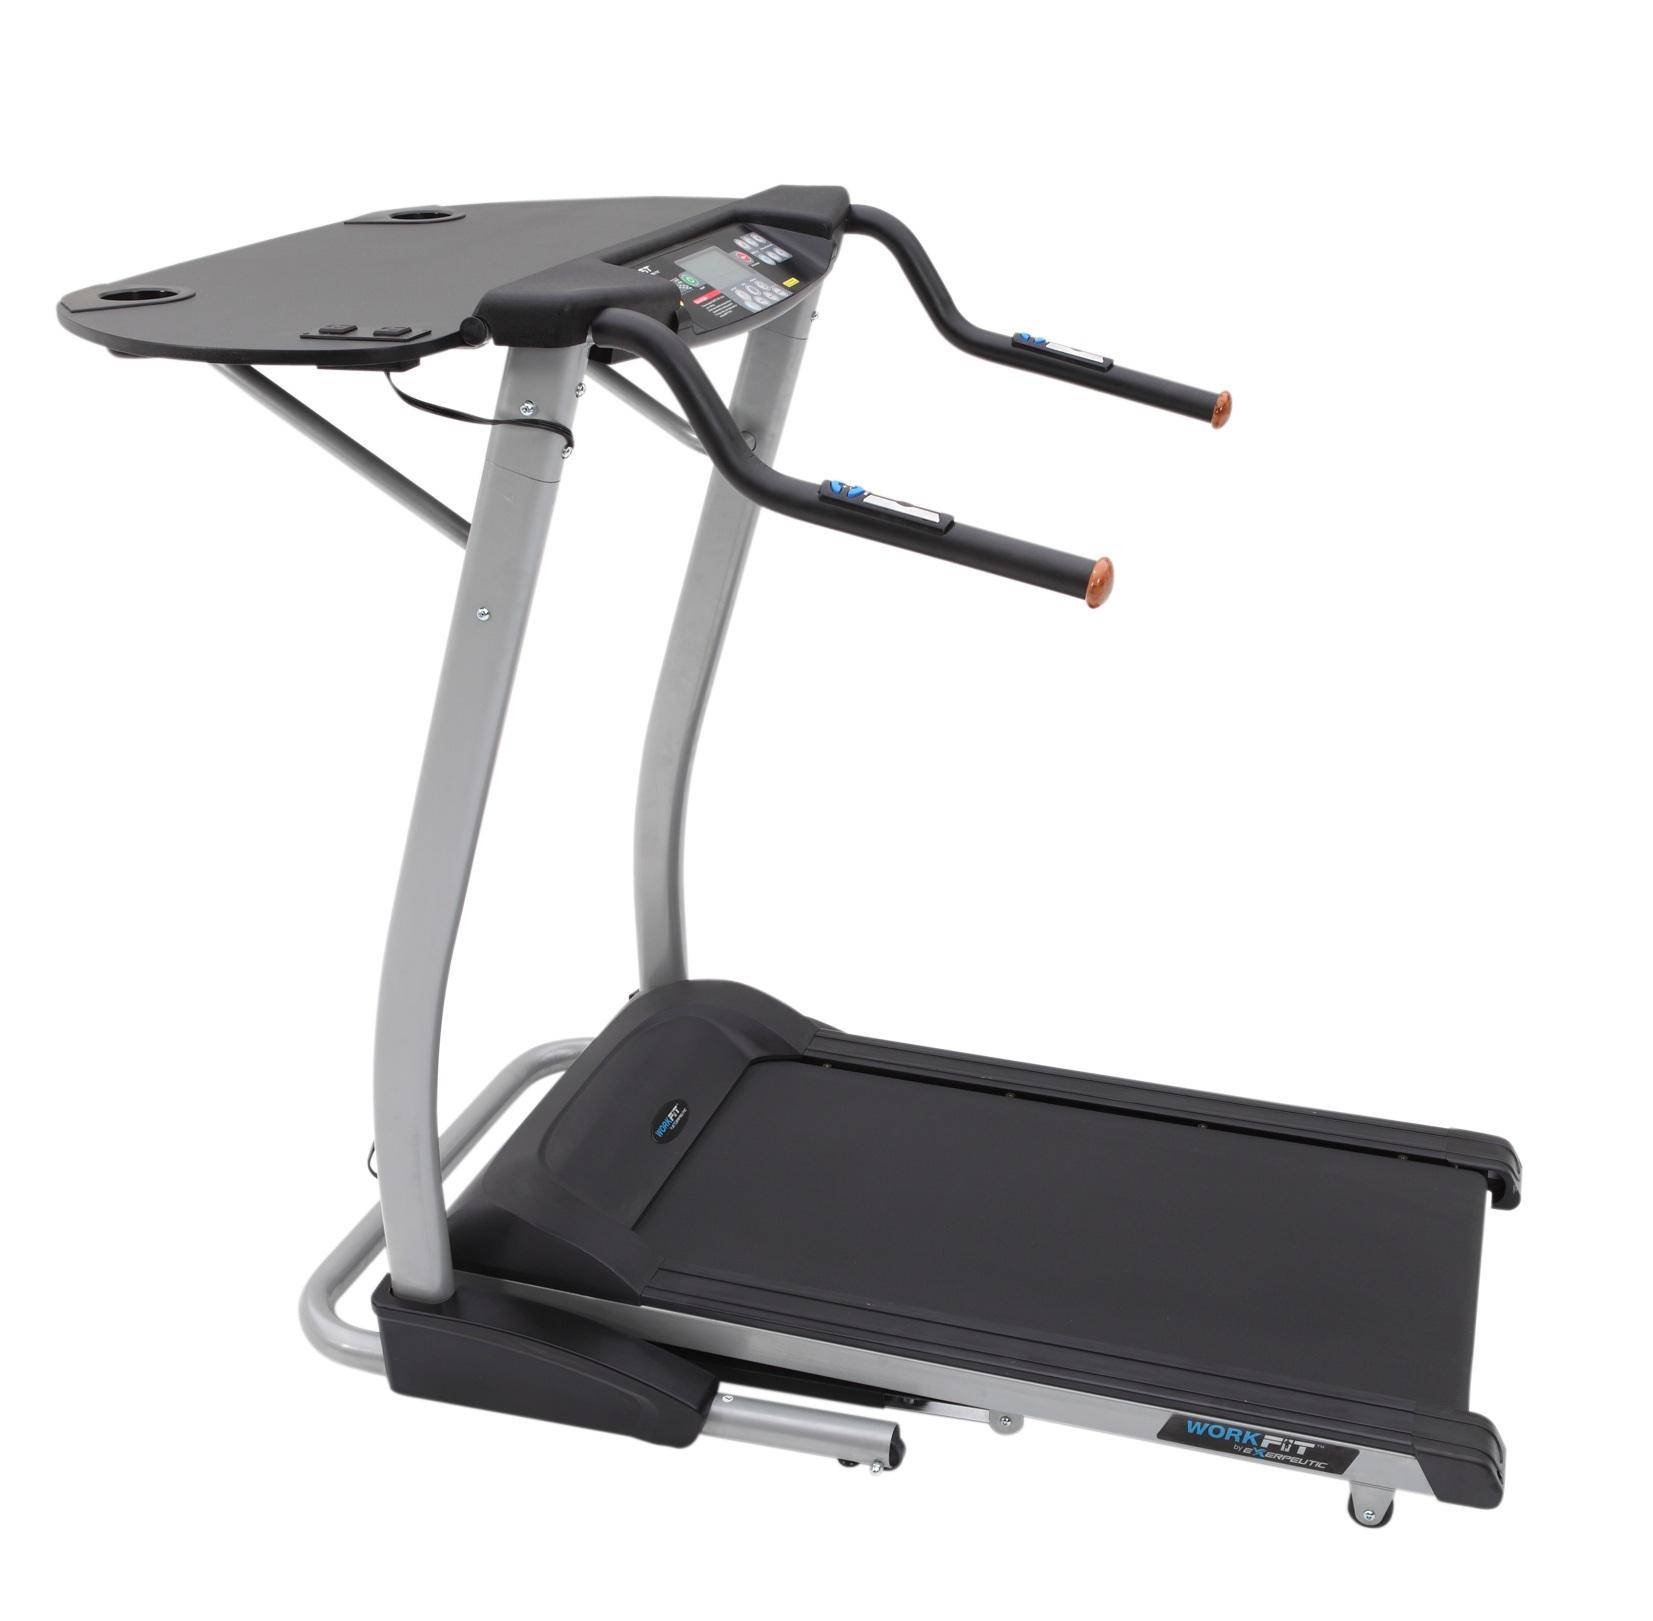 Golds Gym Treadmill 480 Manual: Amazon.com : Exerpeutic 2000 WorkFit High Capacity Desk